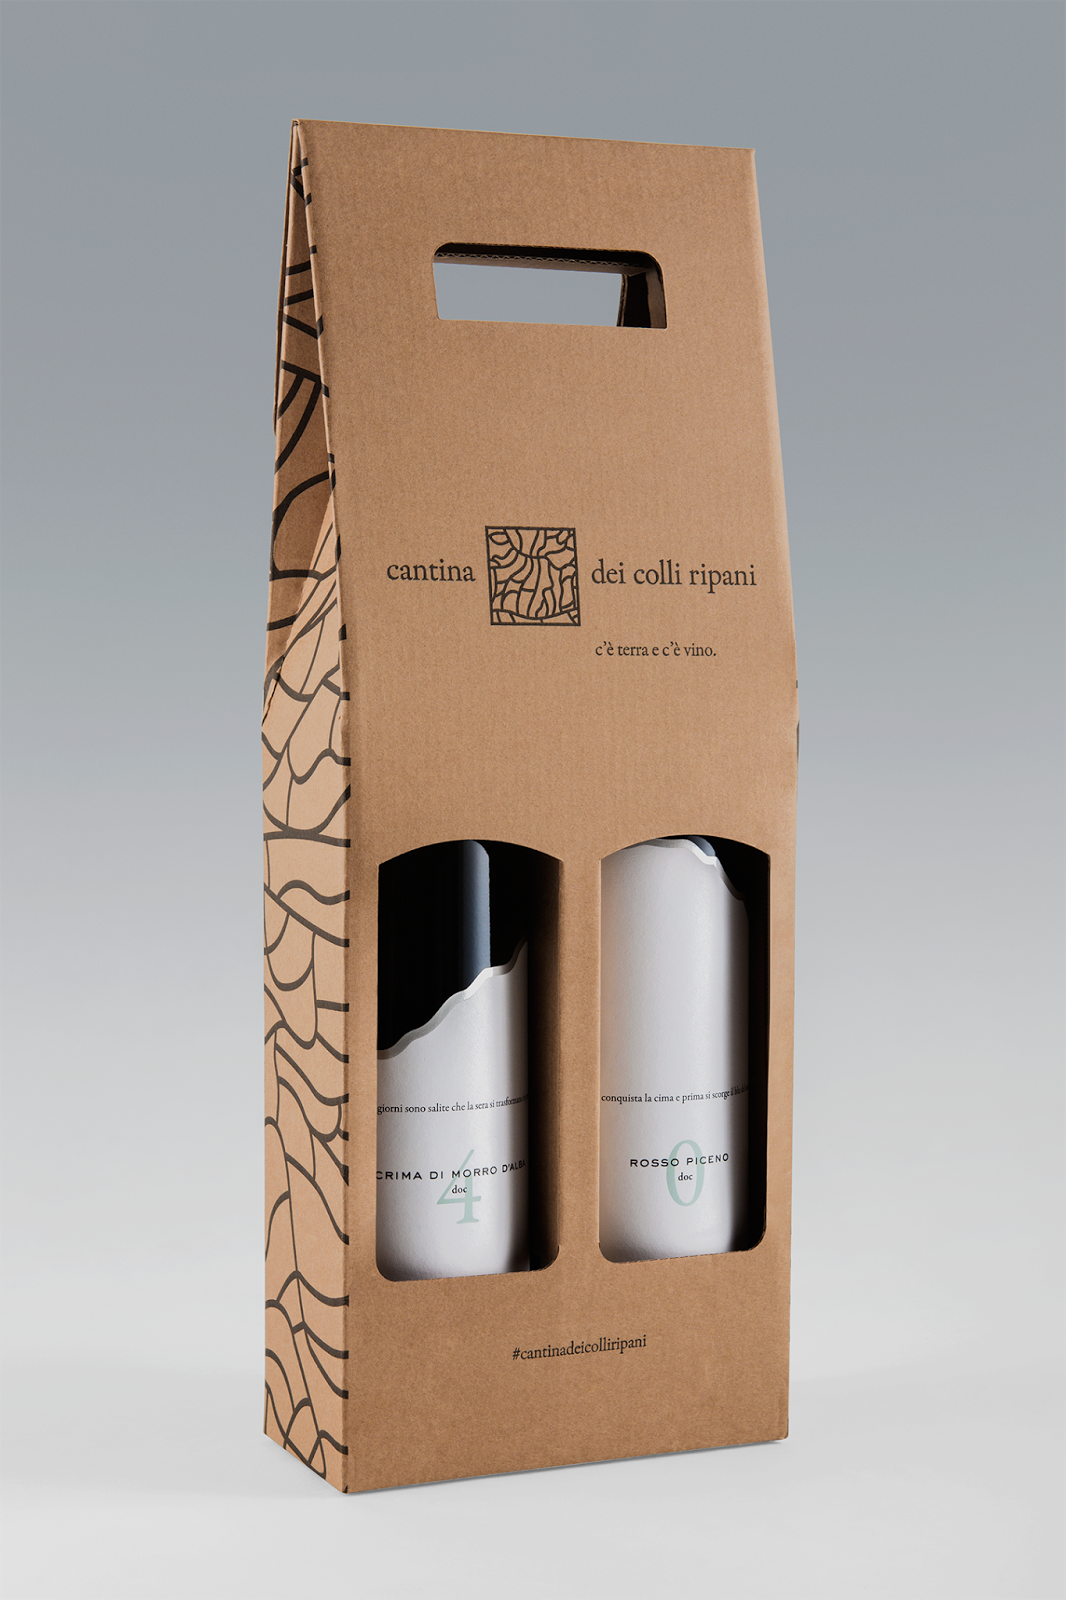 Original Cardboard Carrier For Beer Bottles With A Handle To Carry Them Easily Easy Assembly Ava Beer Packaging Design Beer Bottle Design Beer Bottle Carrier